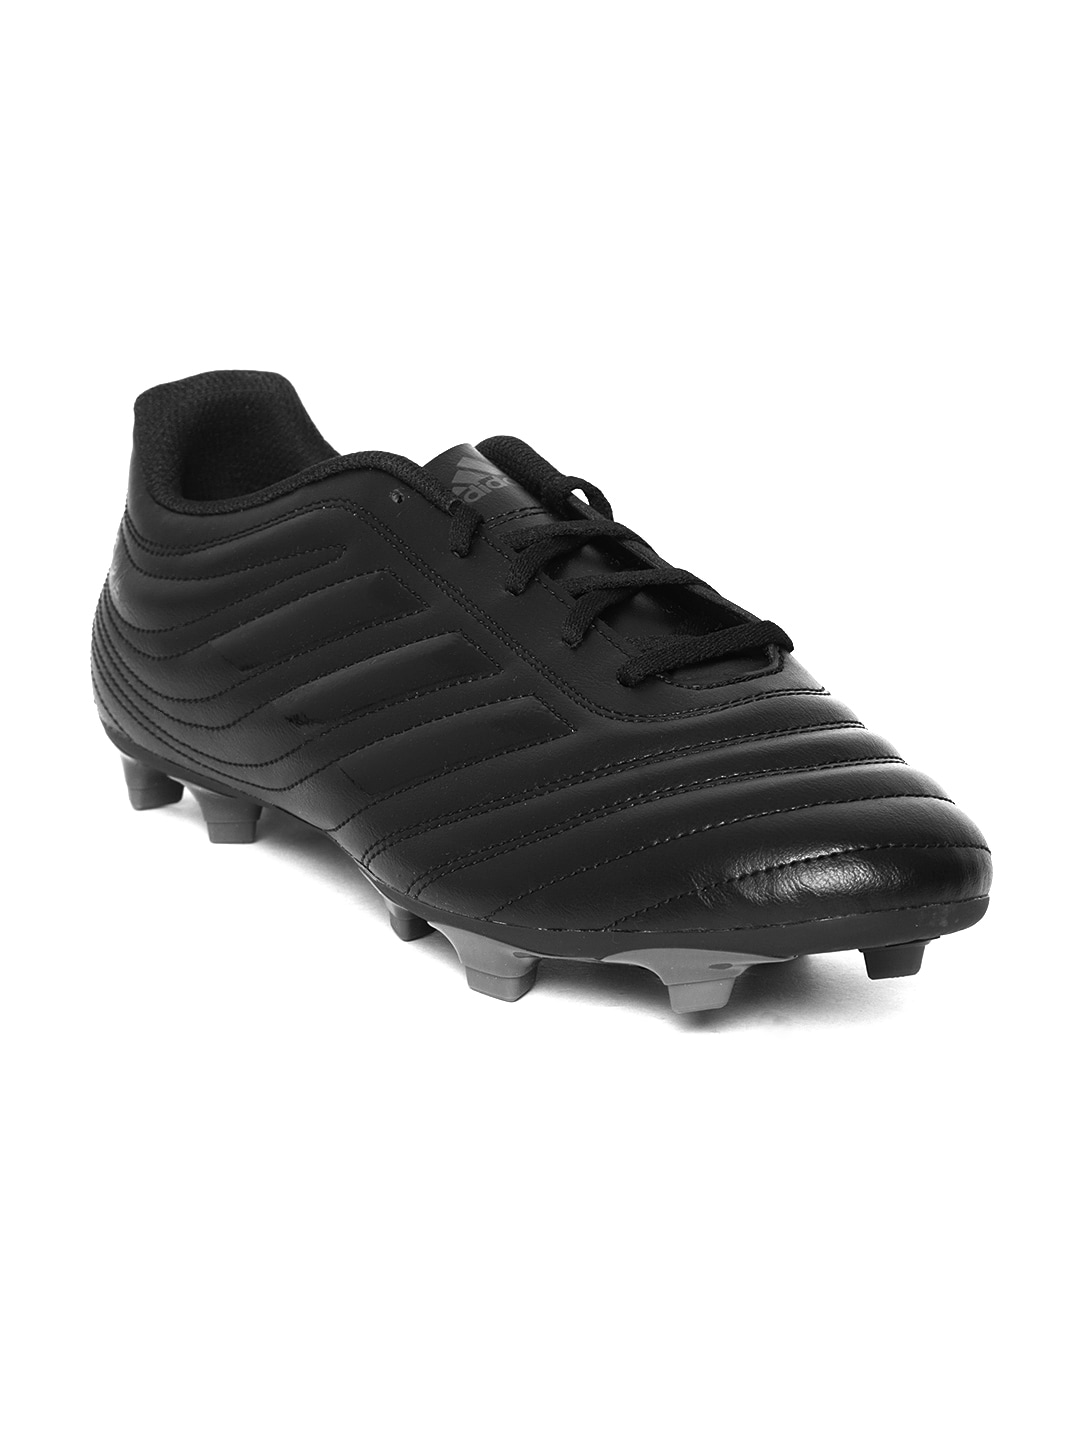 bb64165d2f6 Adidas Sports Shoes - Buy Addidas Sports Shoes Online